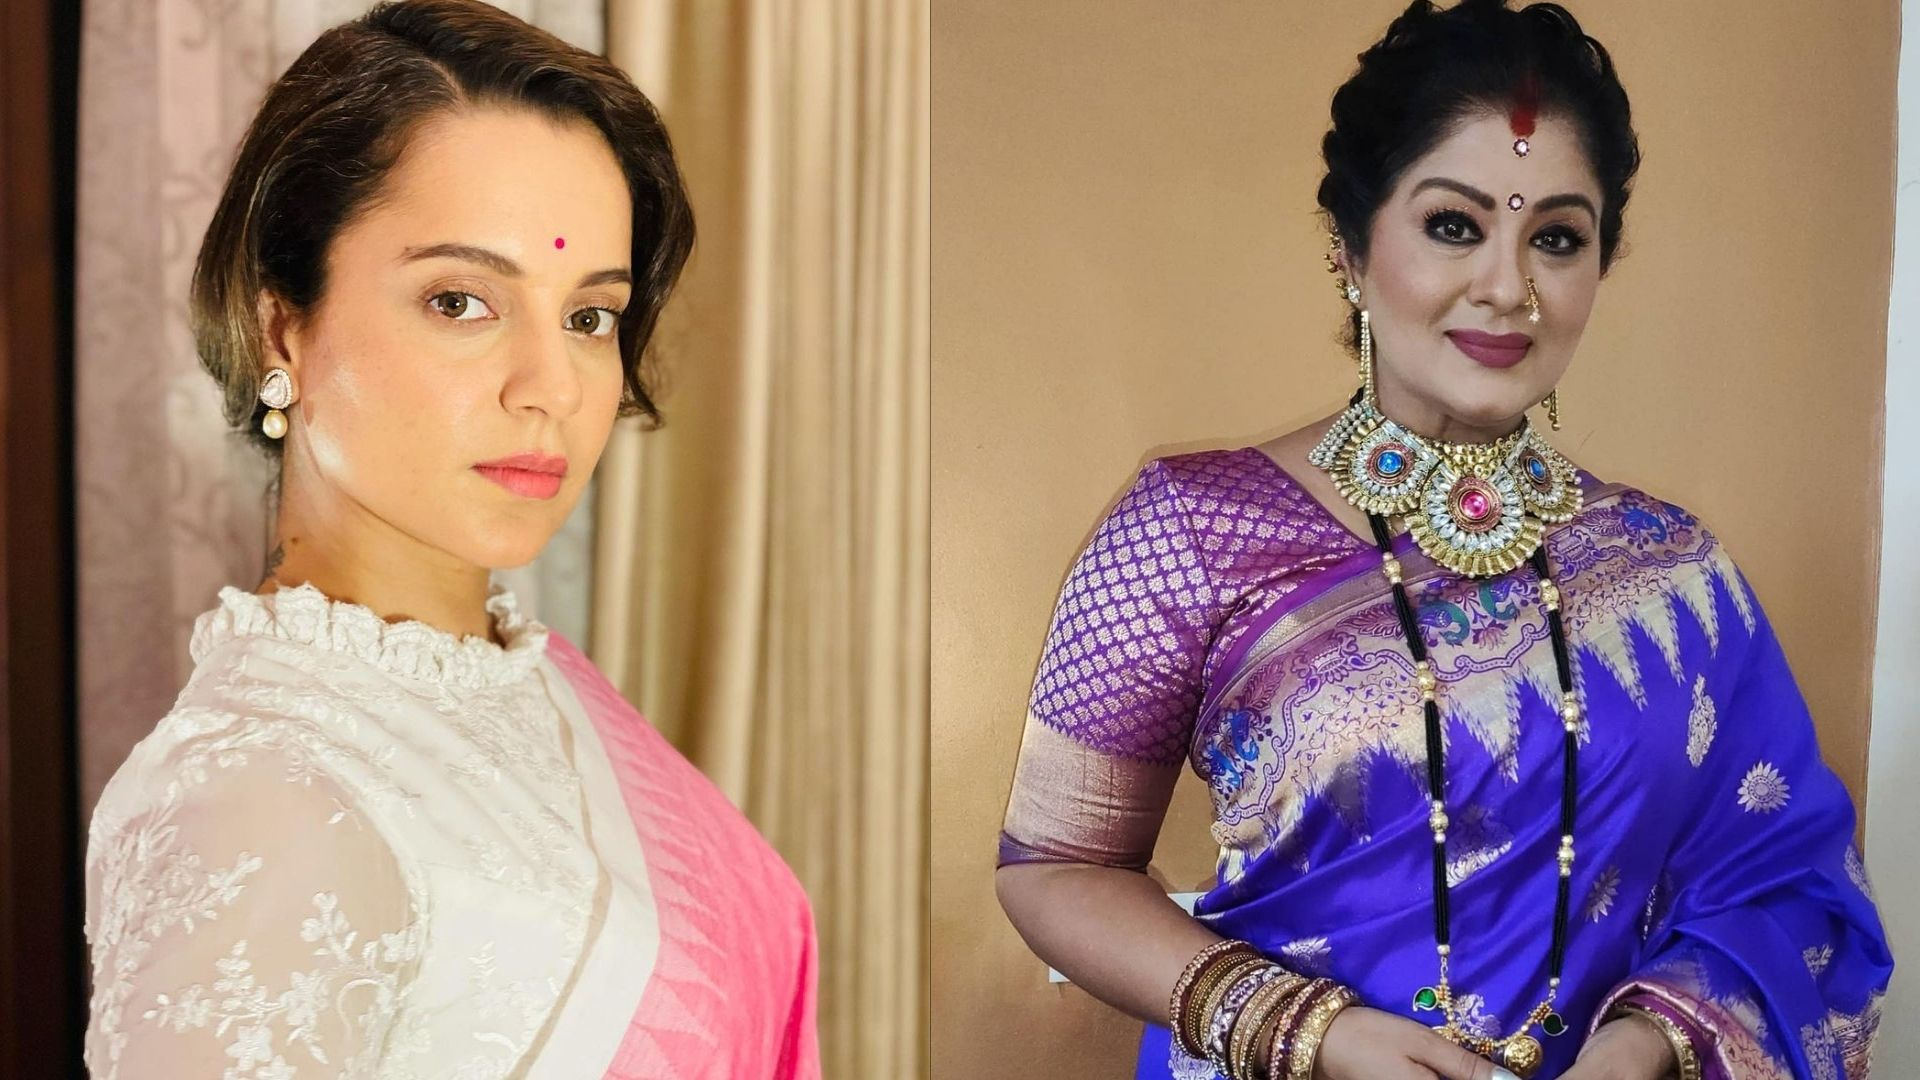 Kangana Ranaut Supports Sudhaa Chandran Amid Her Video From Airport Went Viral; Actress Writes Note On Social Media